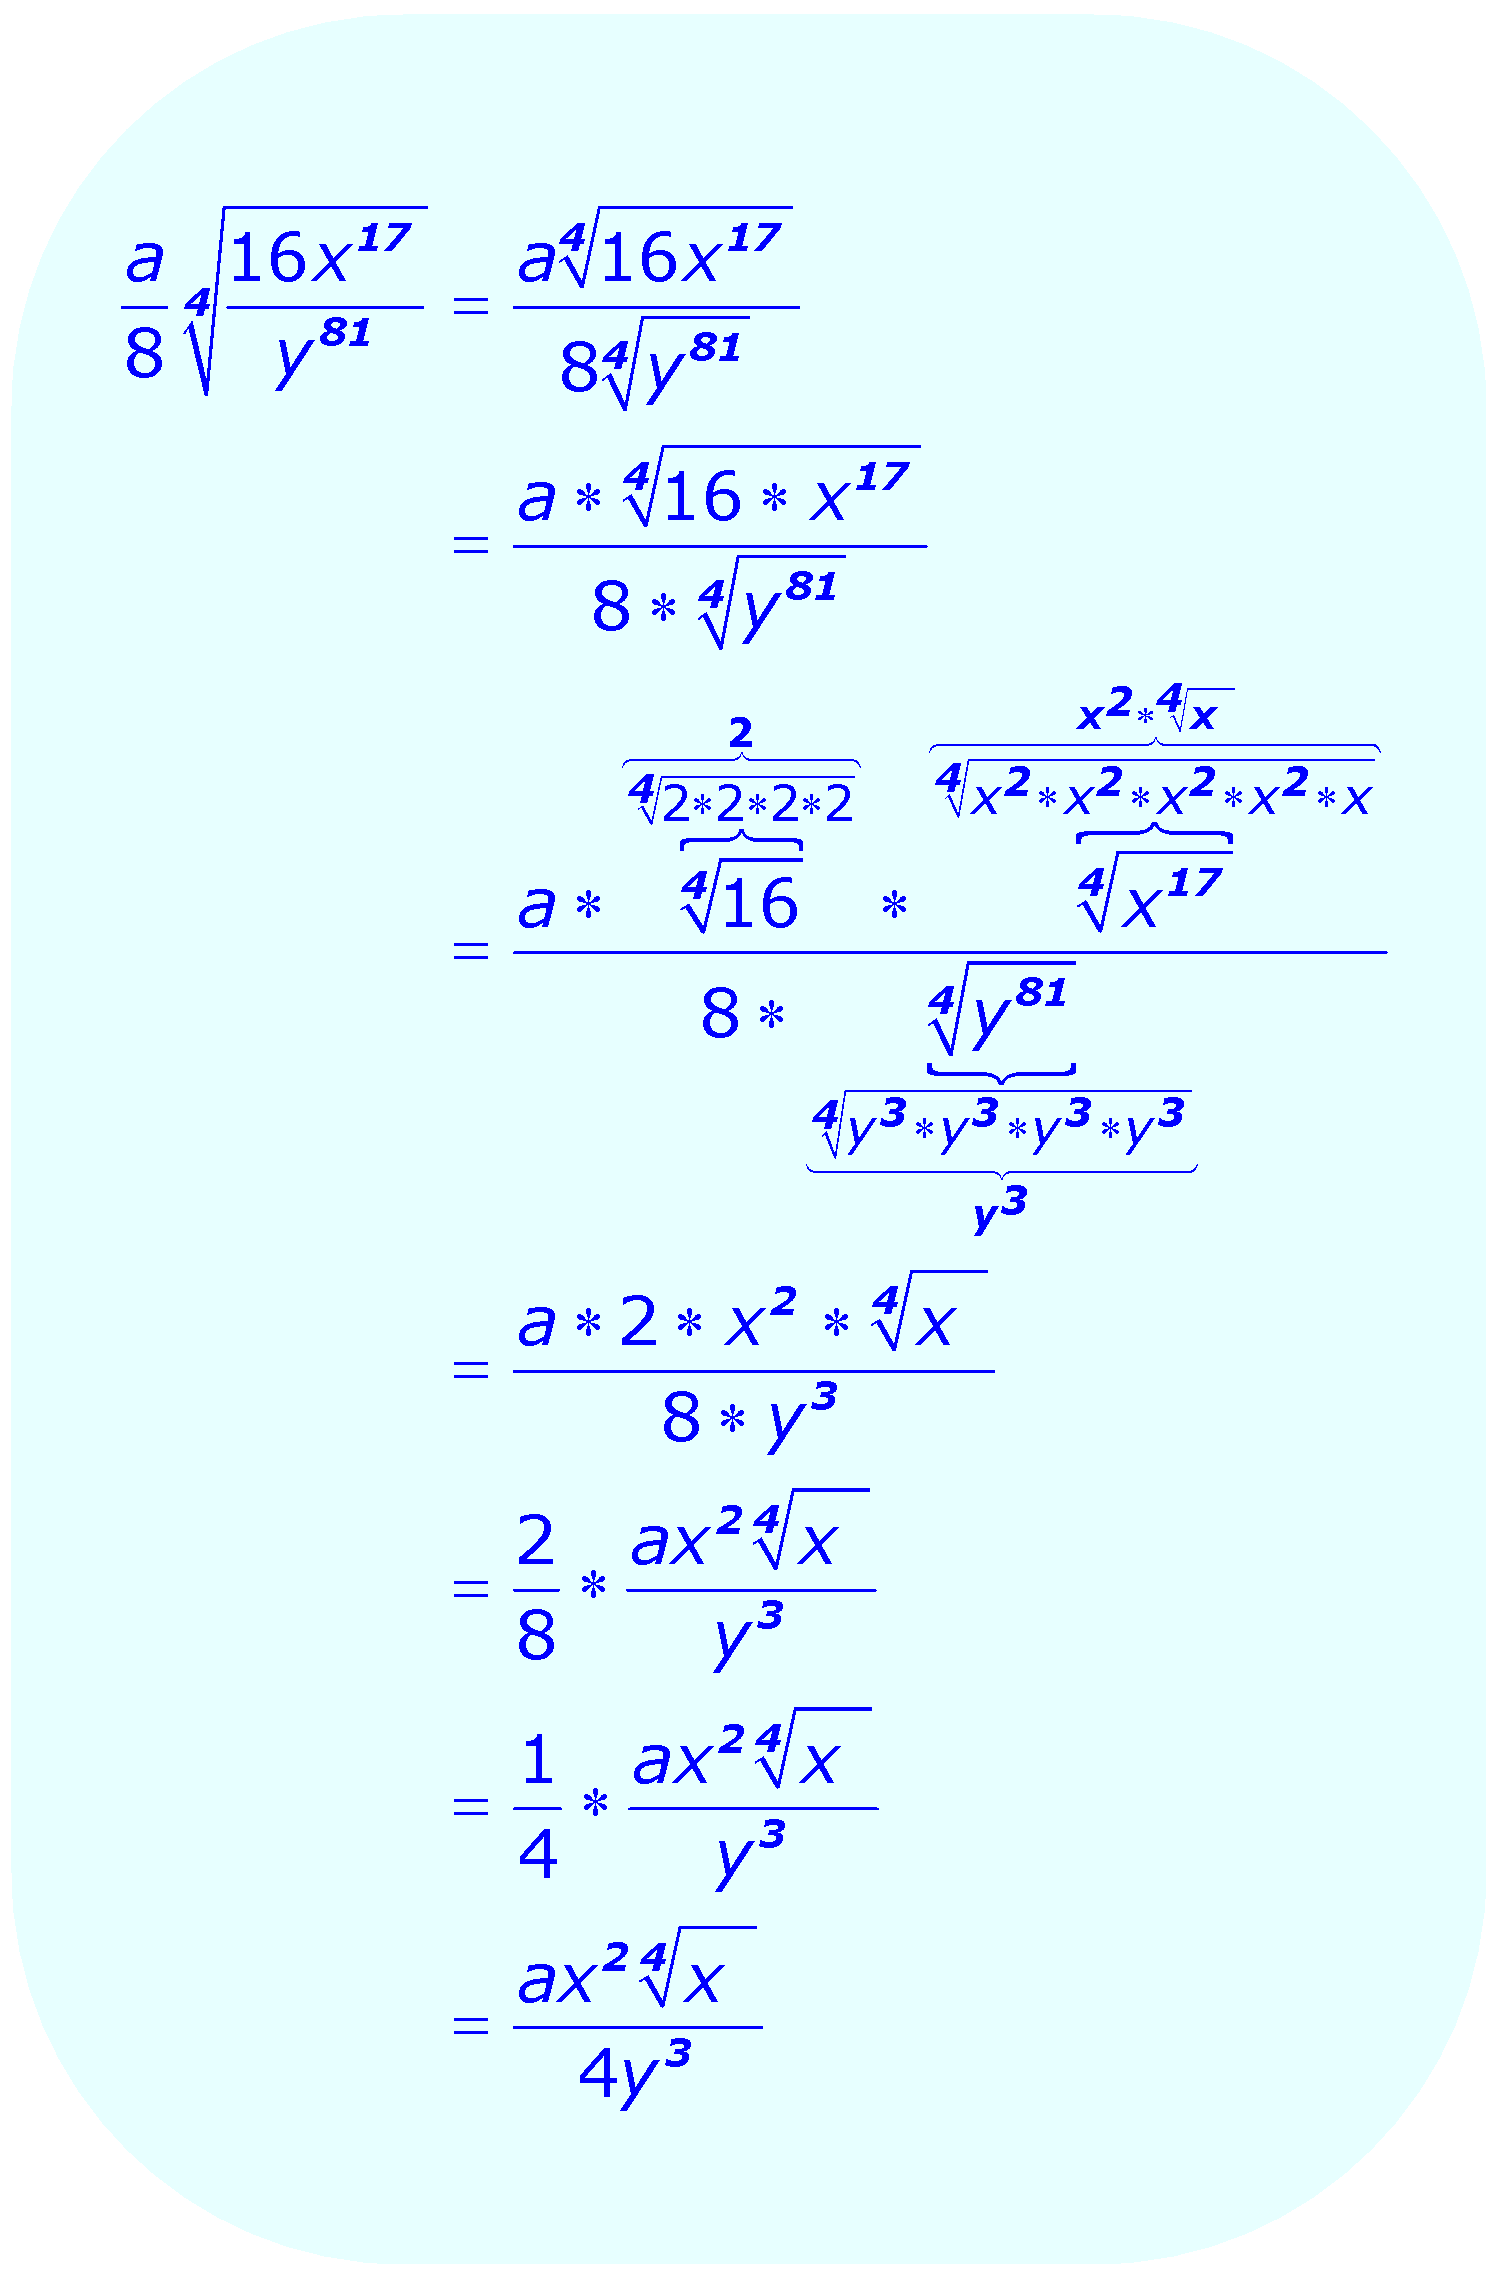 worksheet Multiplying Radical Expressions Worksheet simplifying radicals adding and subtracting math simplify radical expression using division property example 4